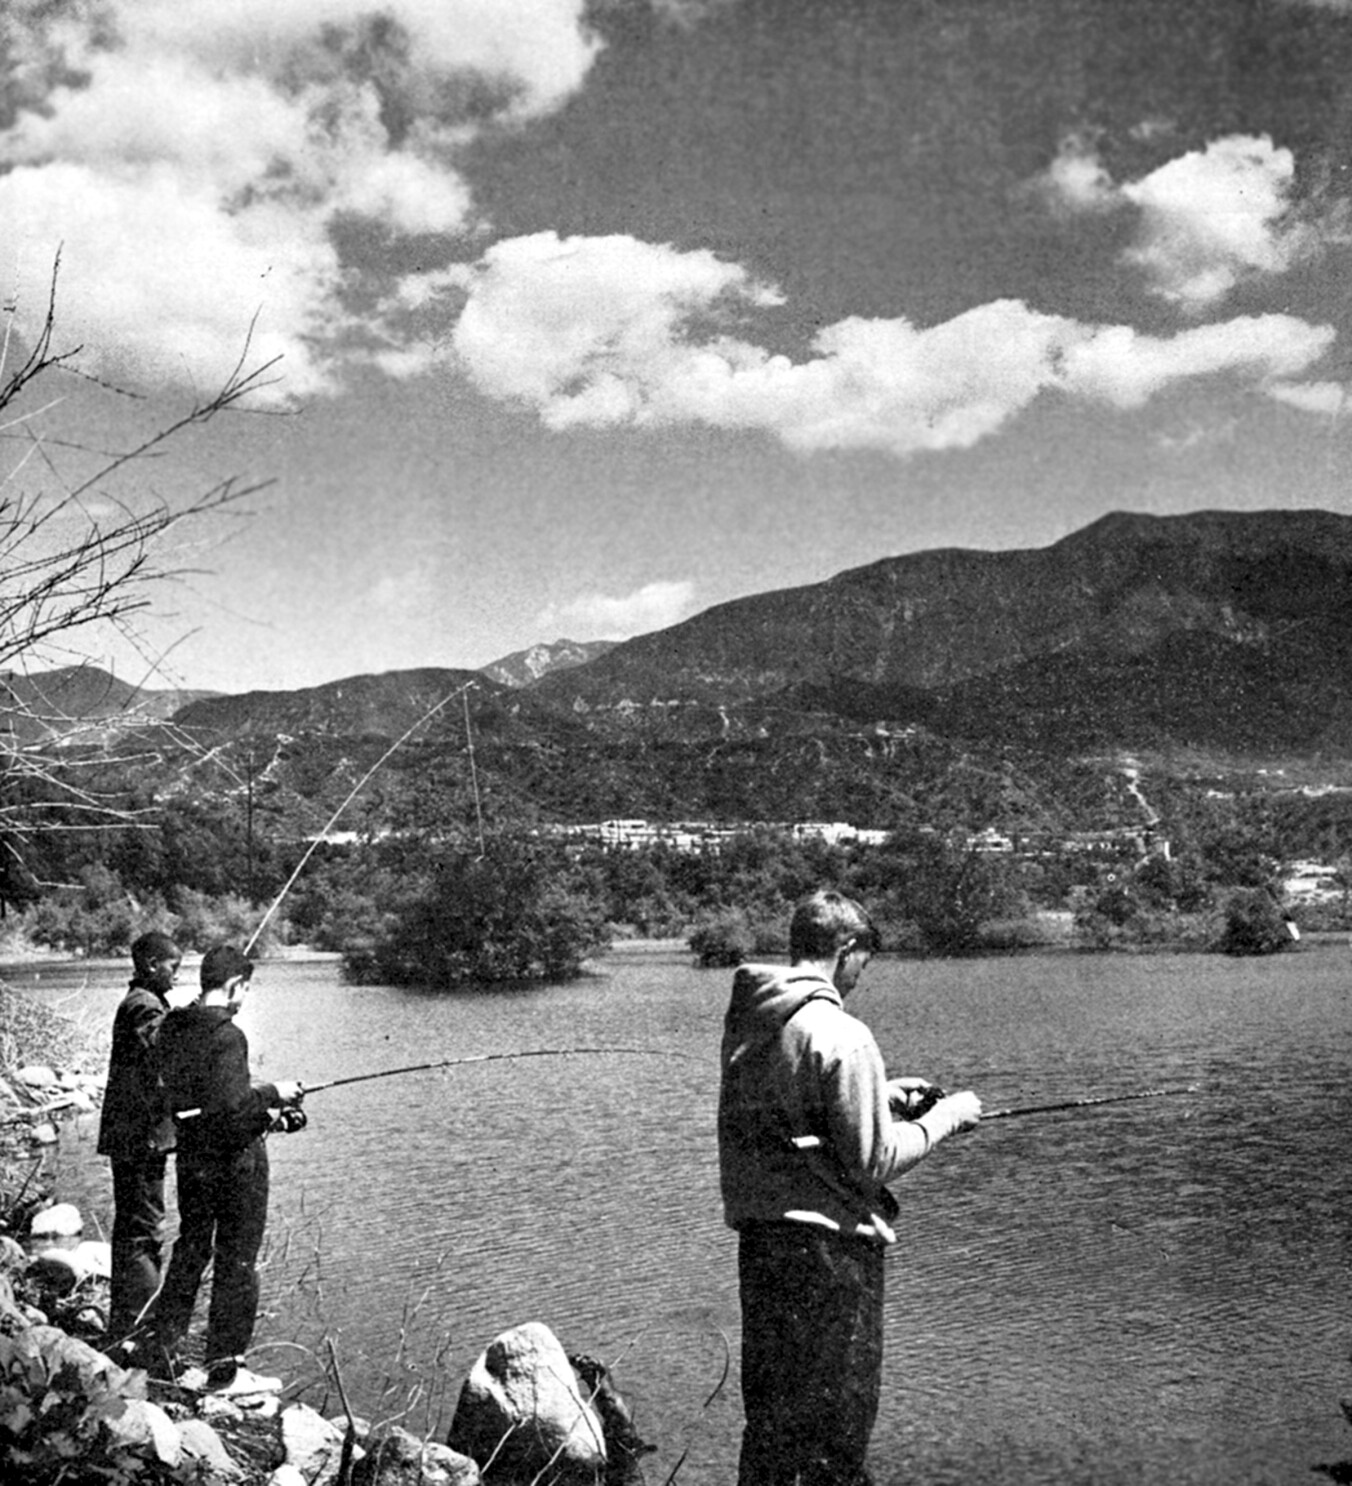 La Cañada History: Once upon a time you could fish at Devil's Gate Dam